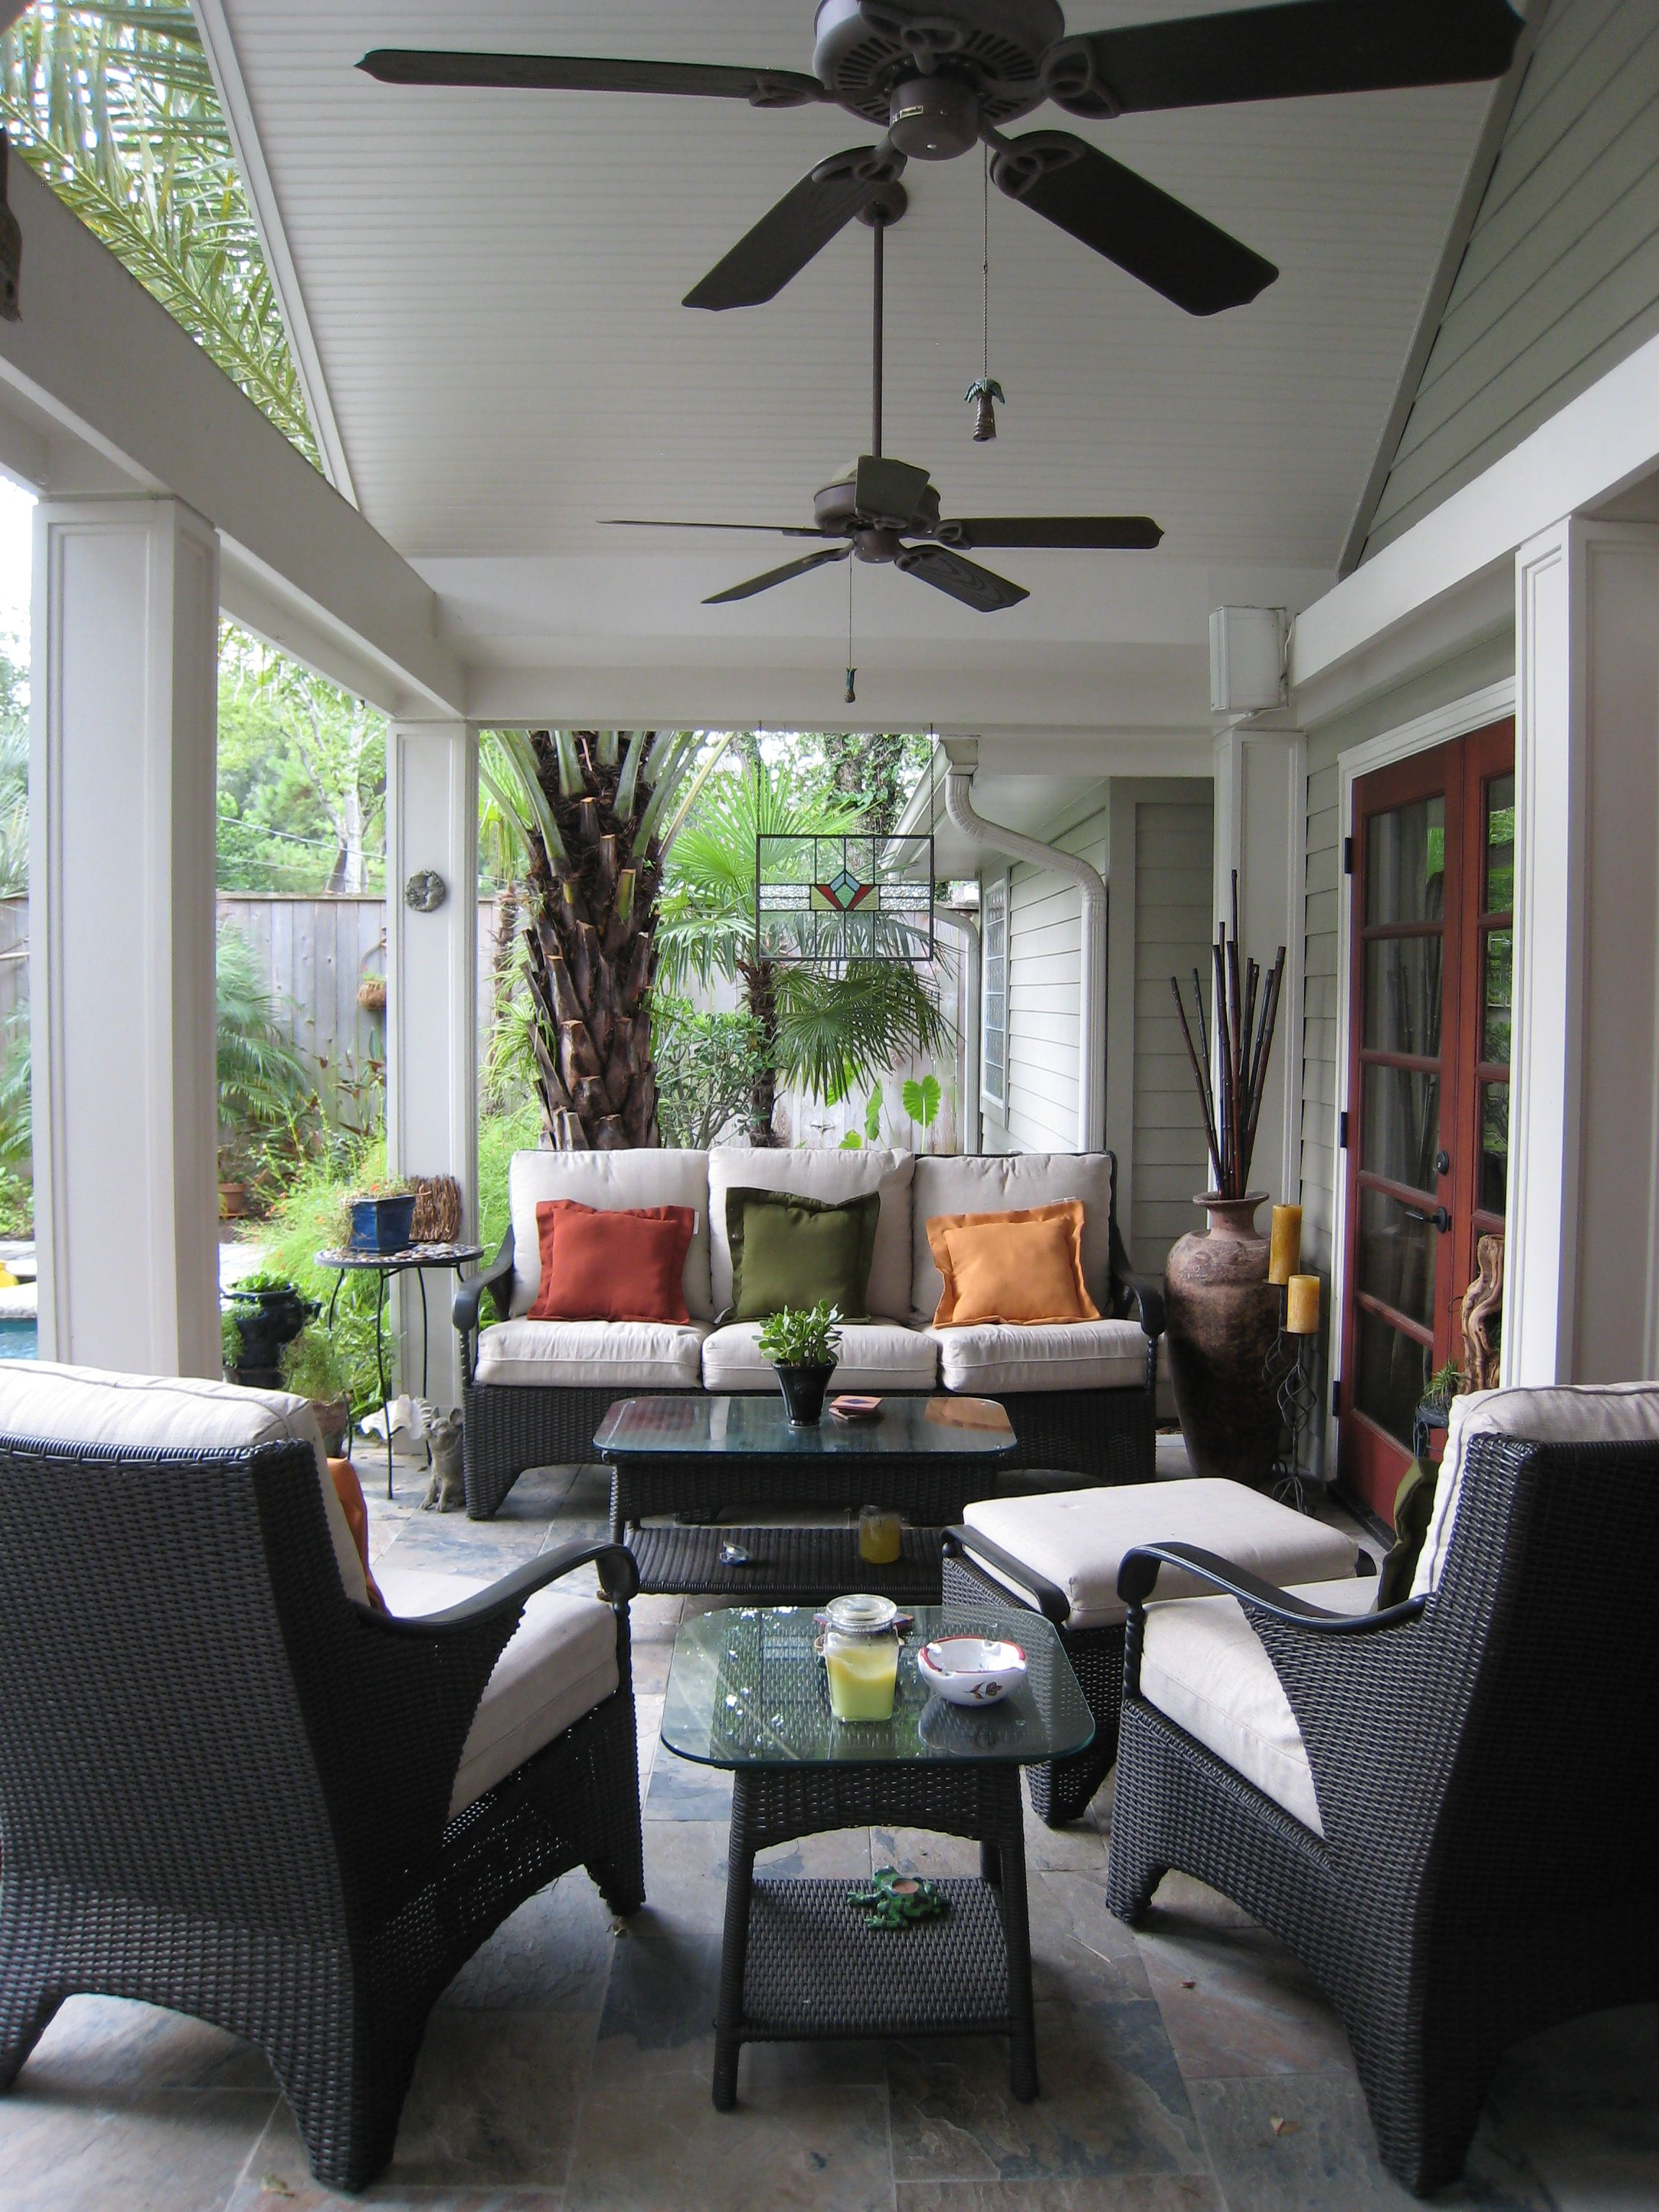 Covered Patio Seating Change Light Fixture To Ceiling